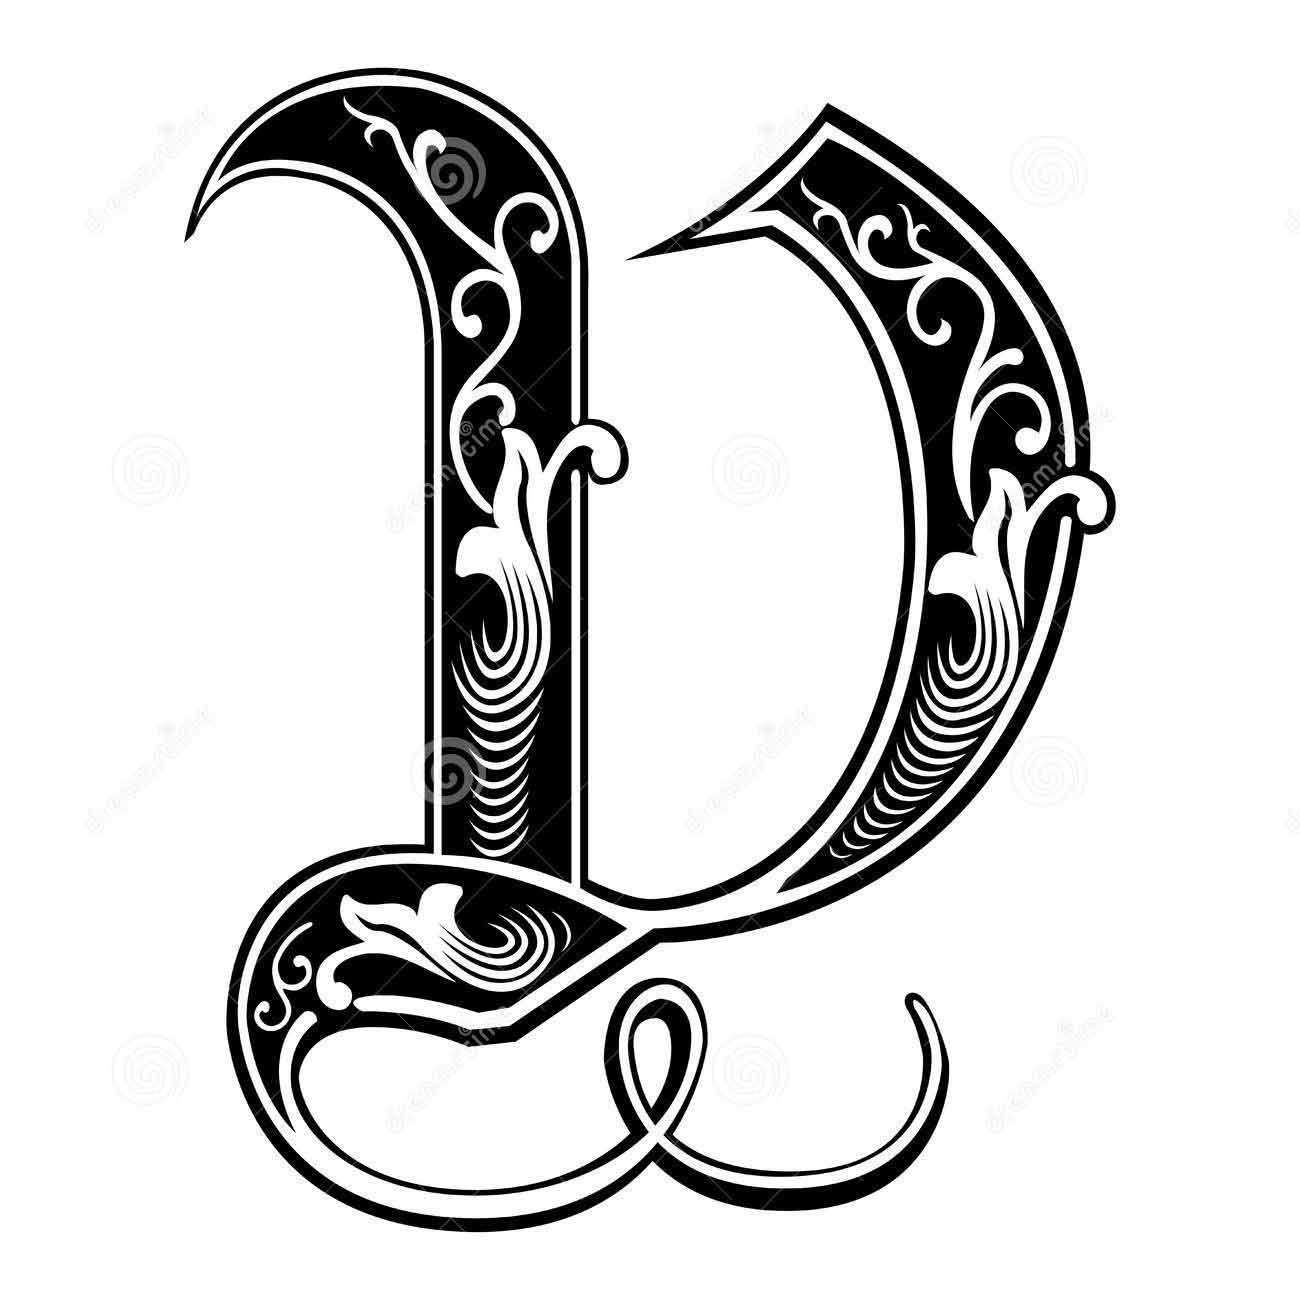 50 Letter V Tattoo Designs Ideas And Templates